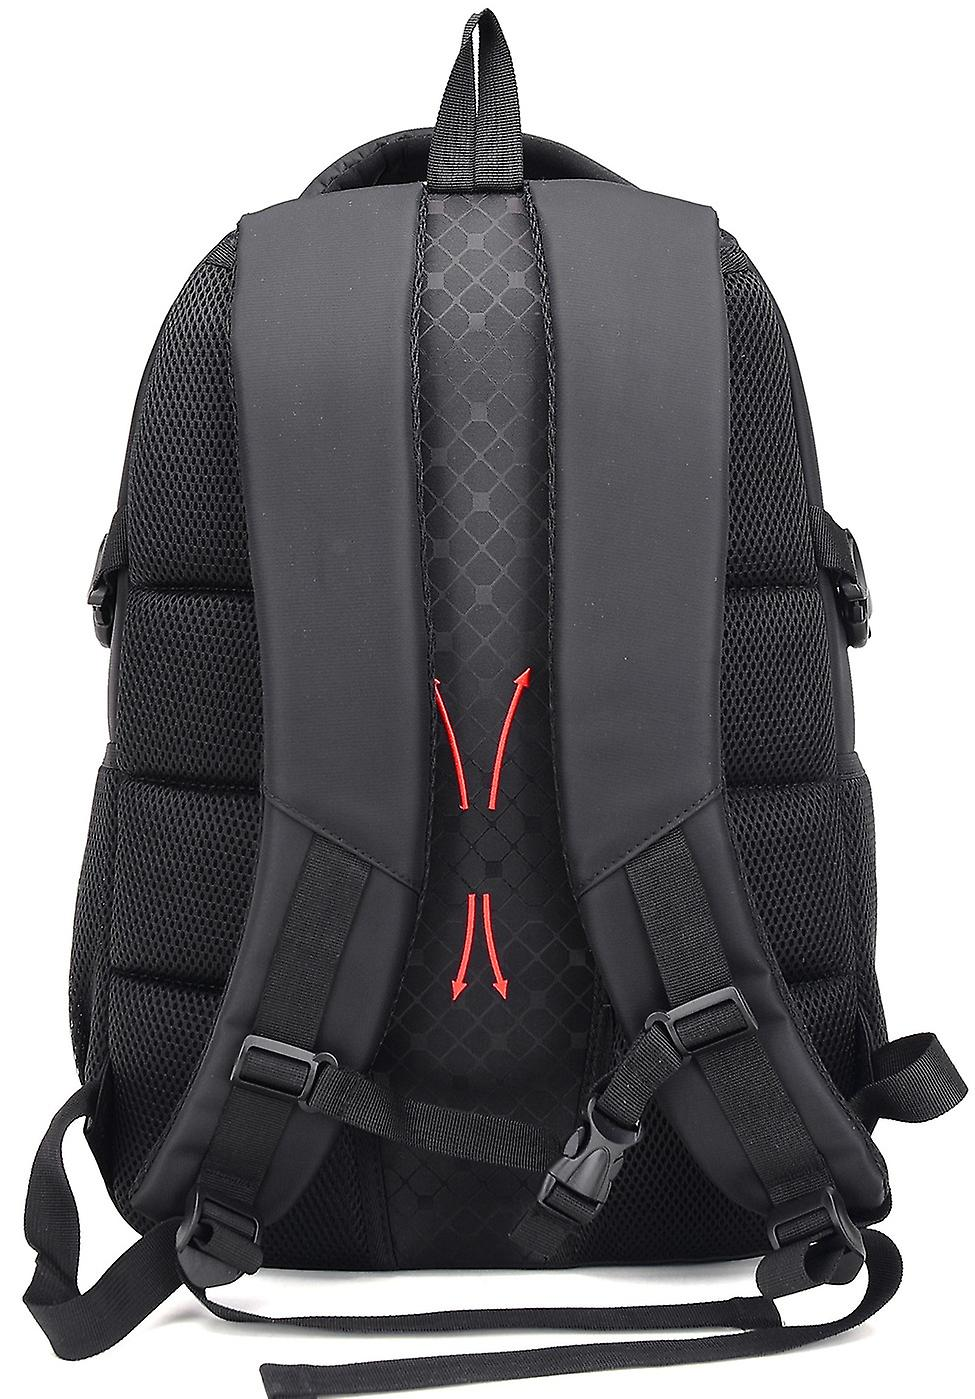 City Bag Waterproof Business Laptop Backpack Fits PC Up To 15.6